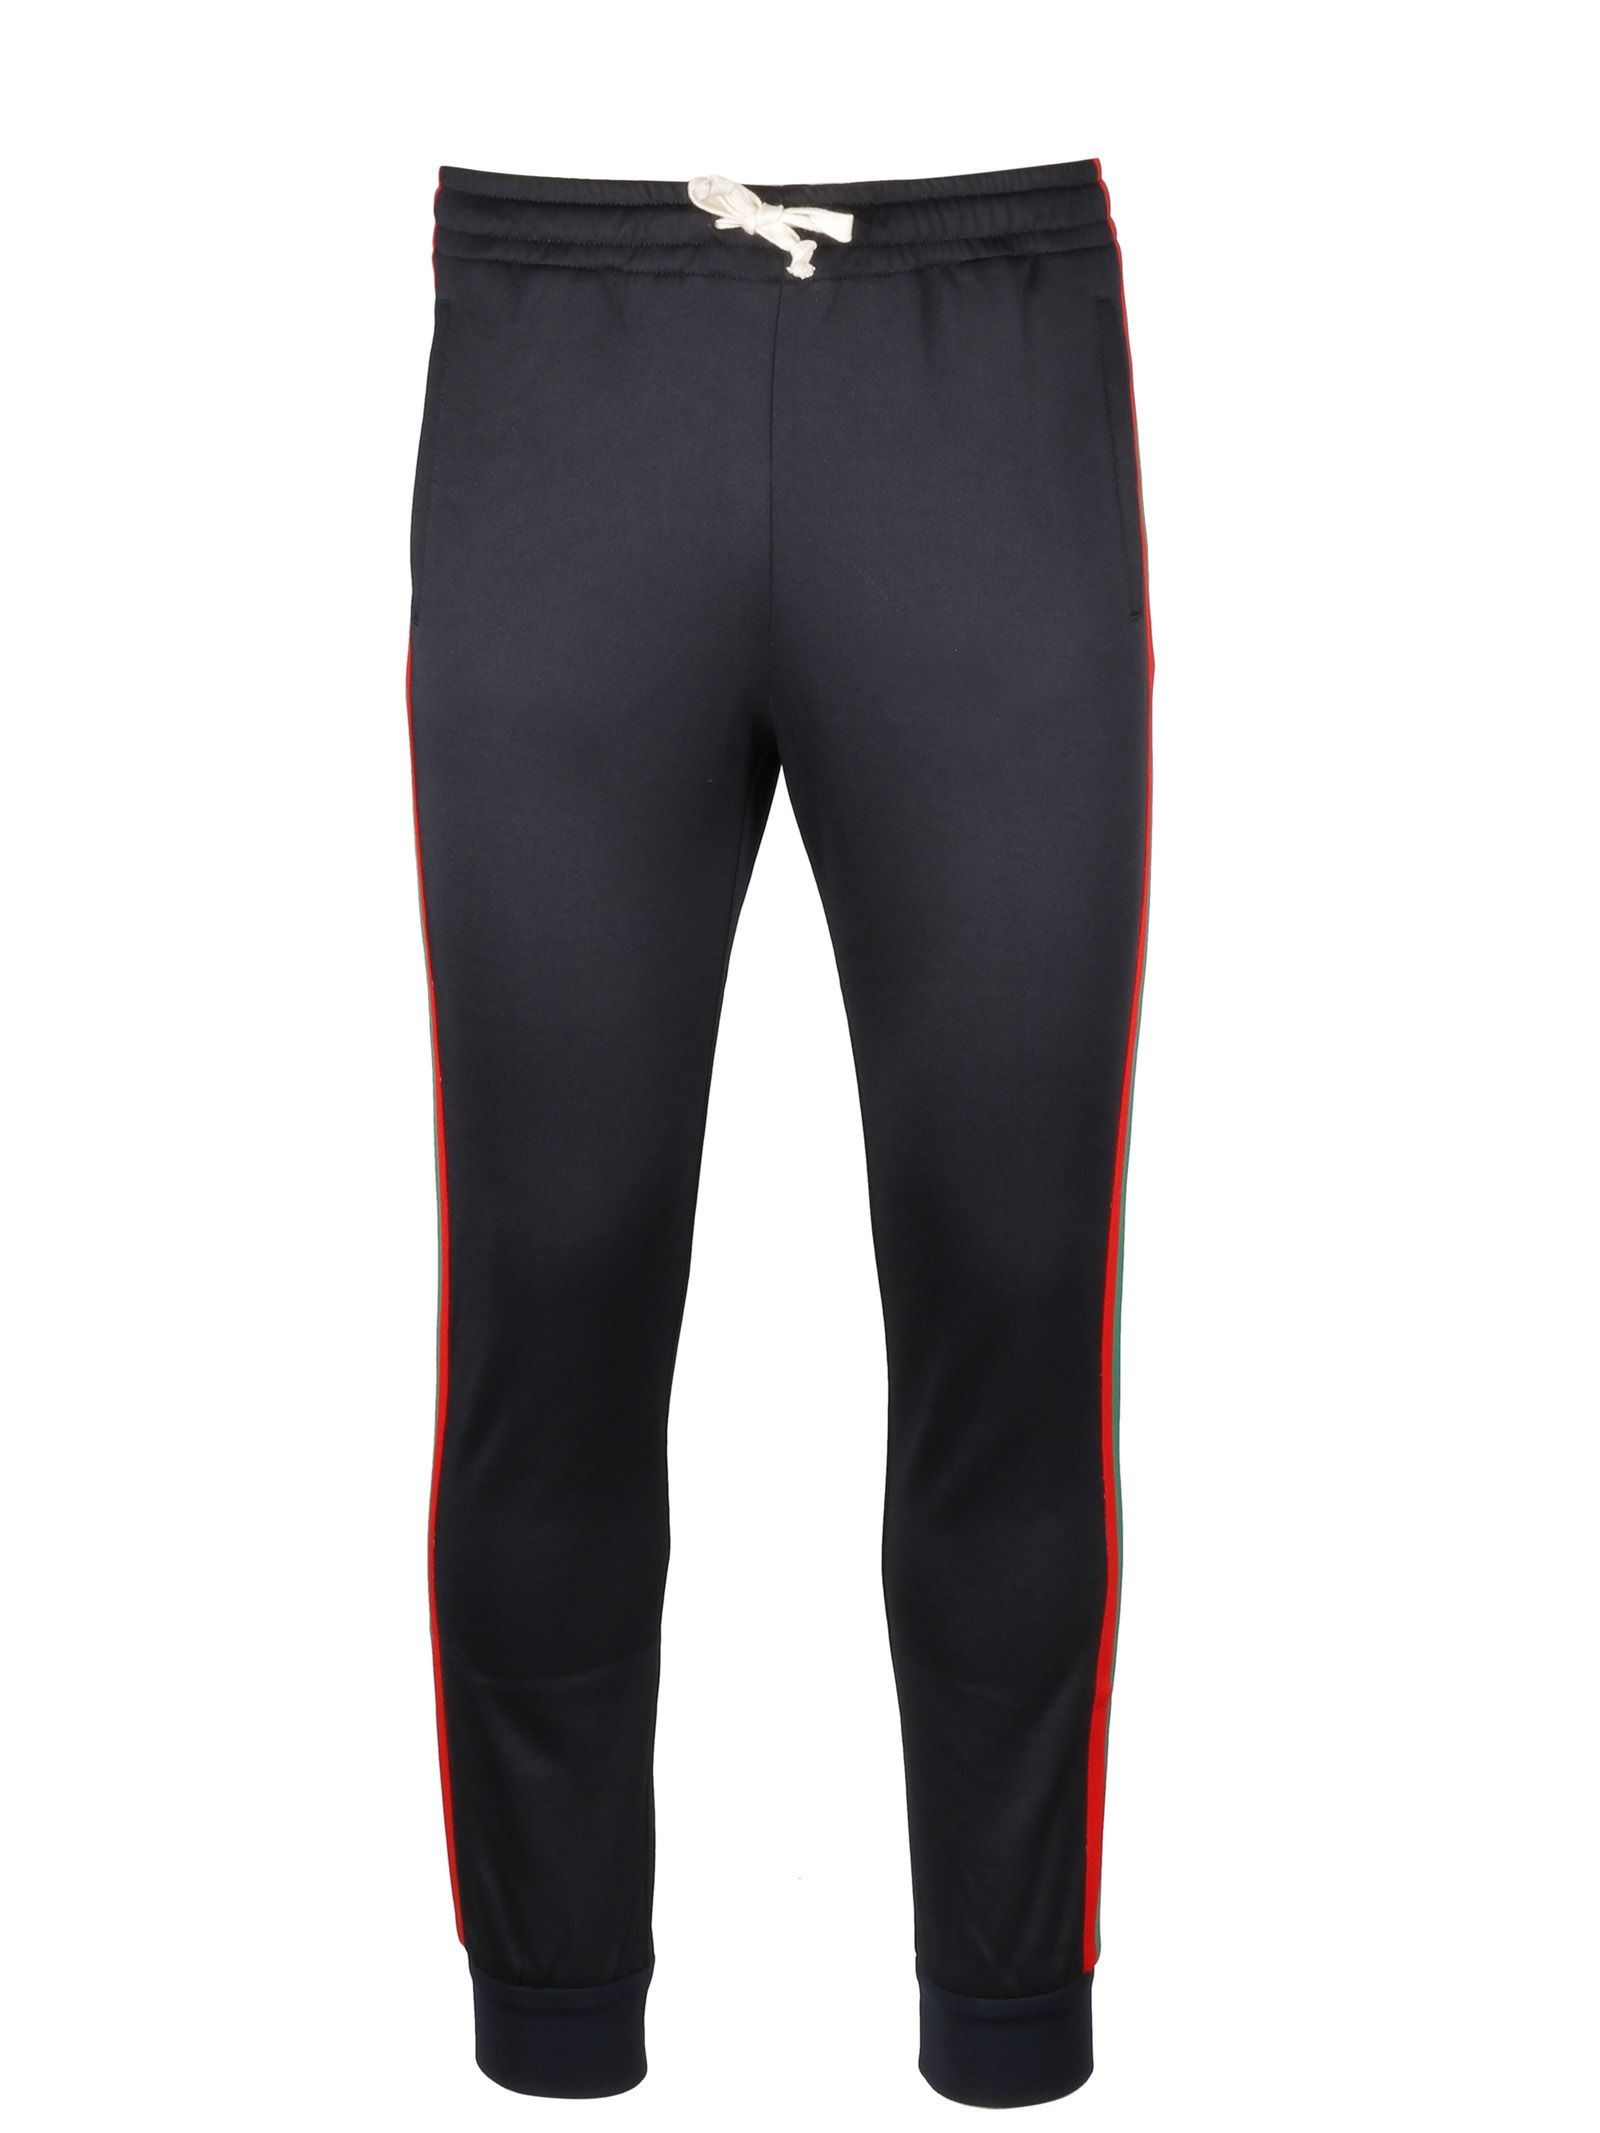 RELAXED TRACK PANTS from Italist.com